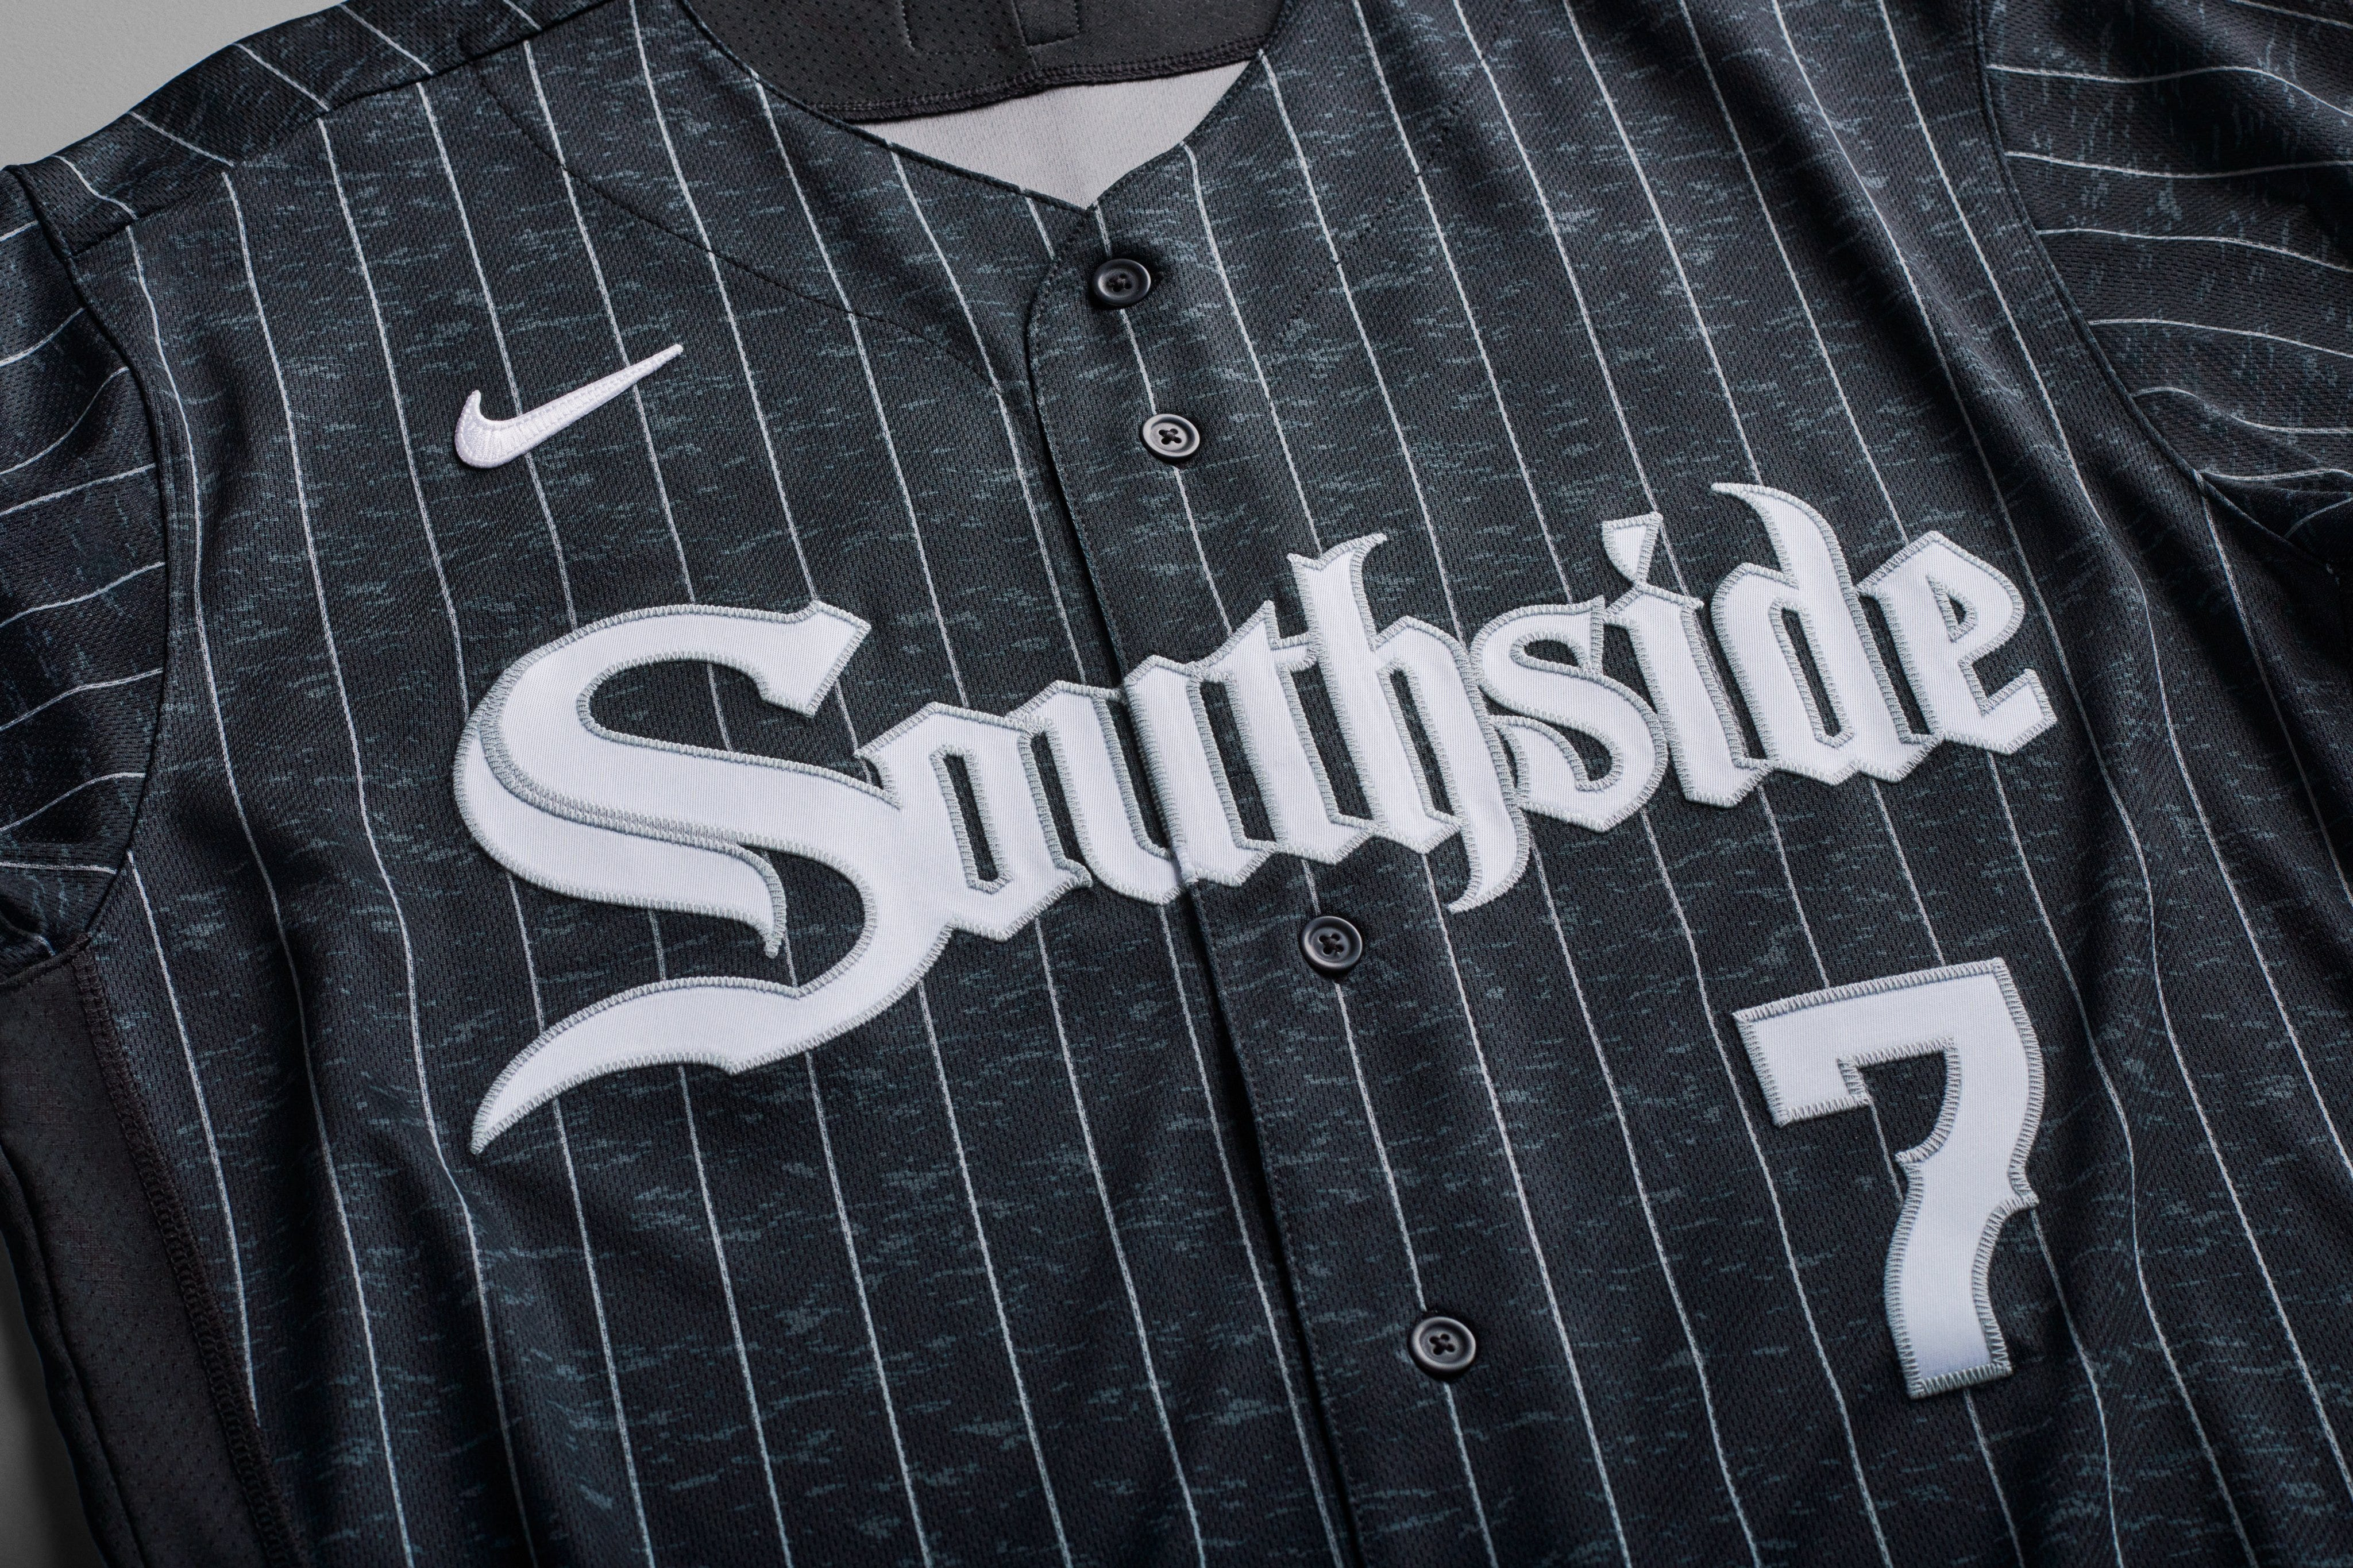 White Sox unveil new City Connect jerseys inspired by Chicago's South Side